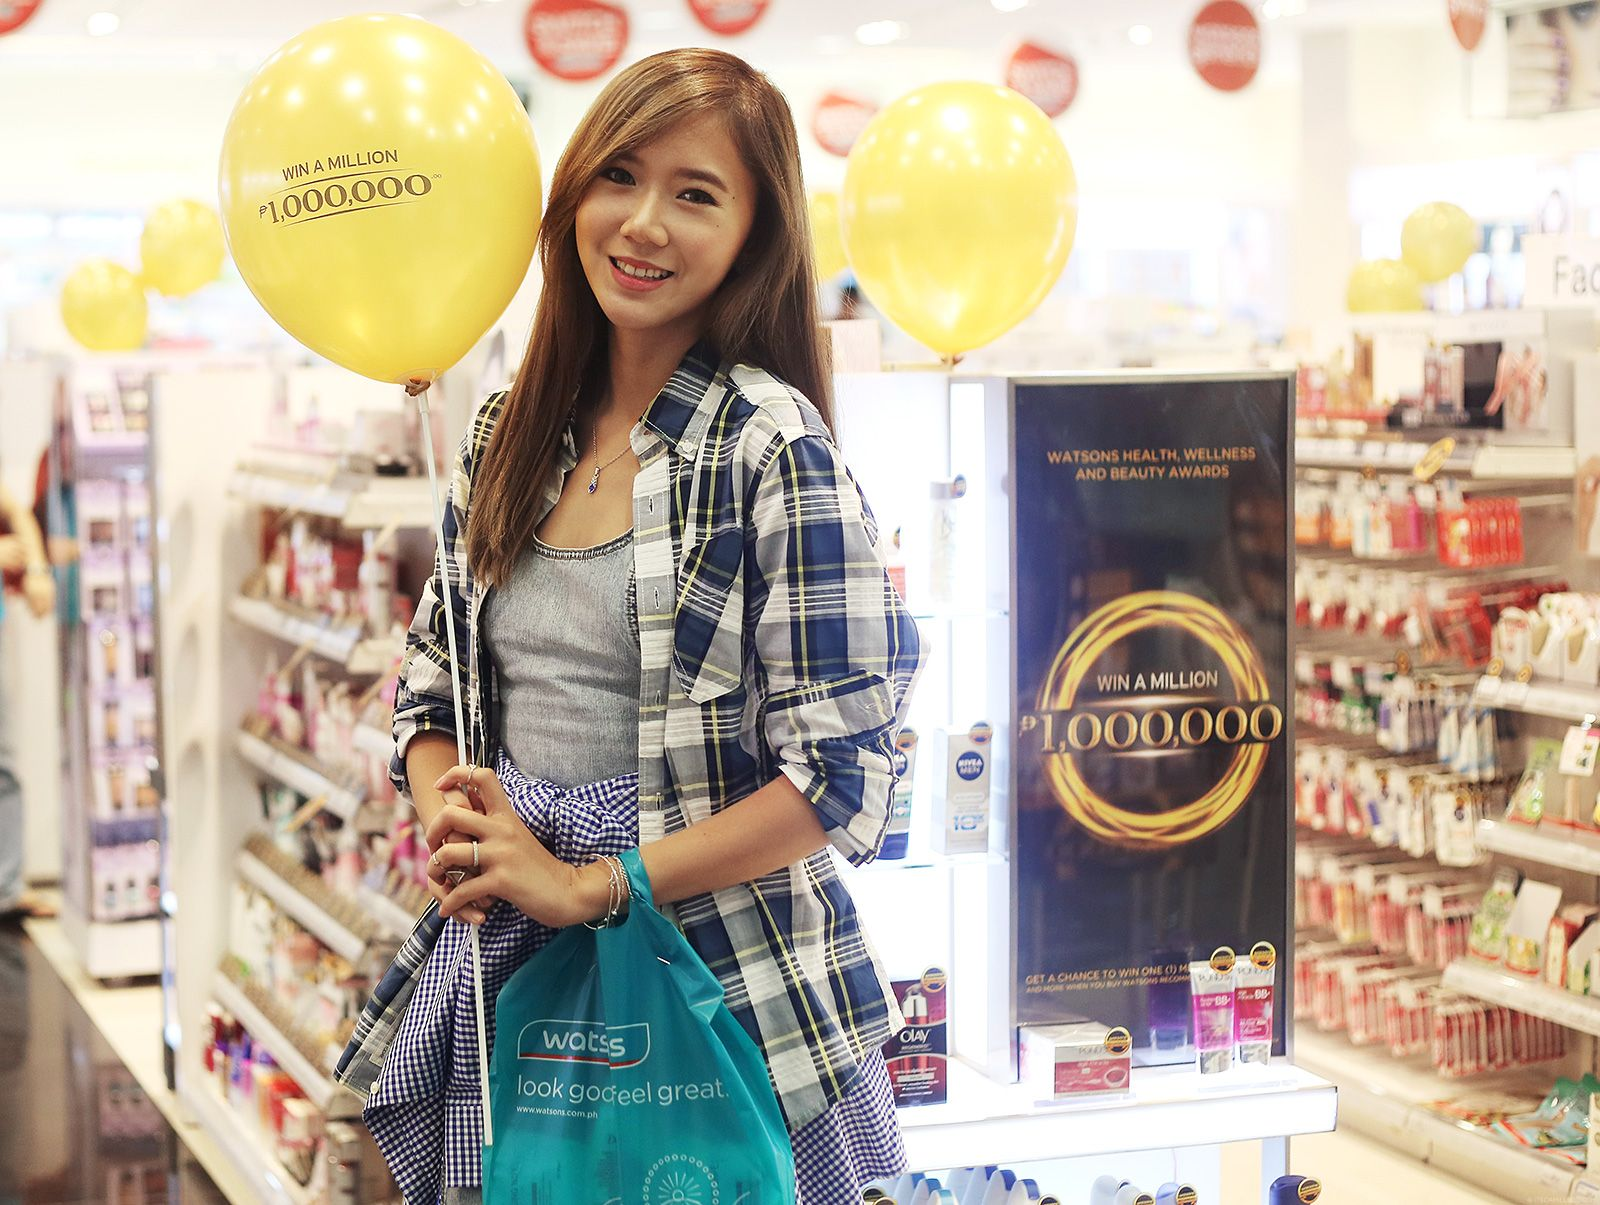 Get Always More With Watsons Win A Million | www.itscamilleco.com